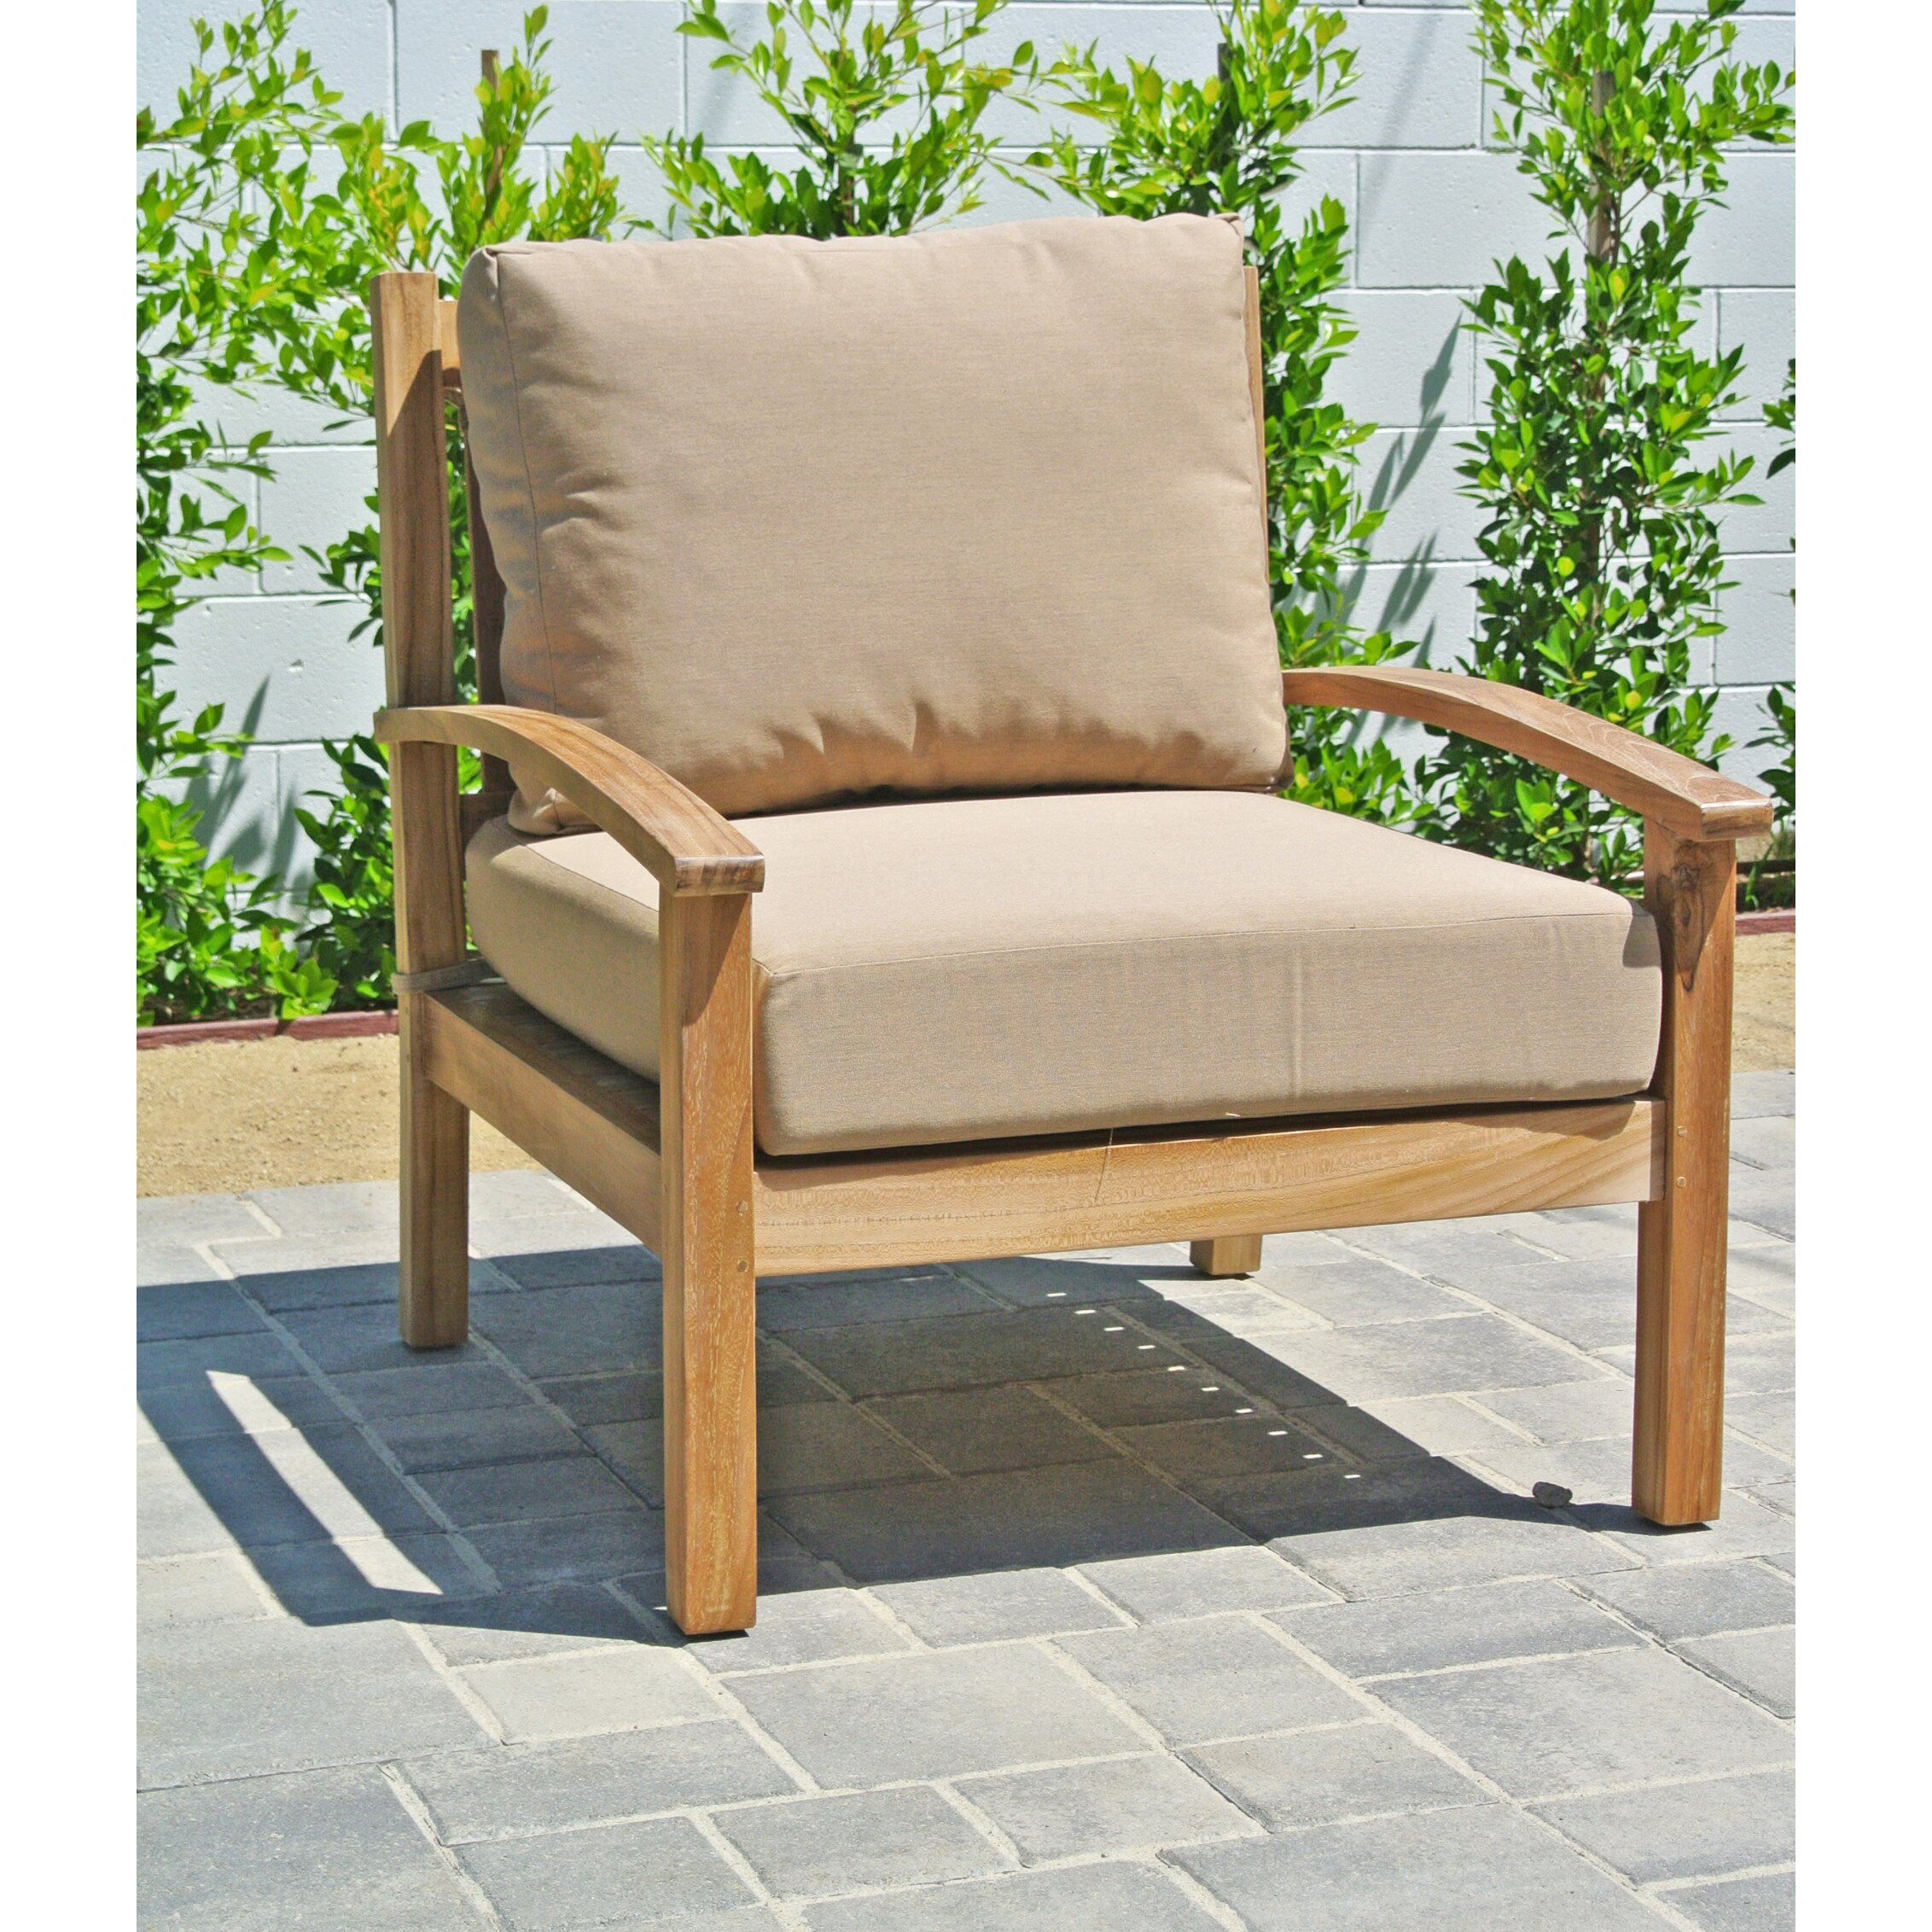 Willow creek designs huntington 6 piece deep seating group for Willow creek designs